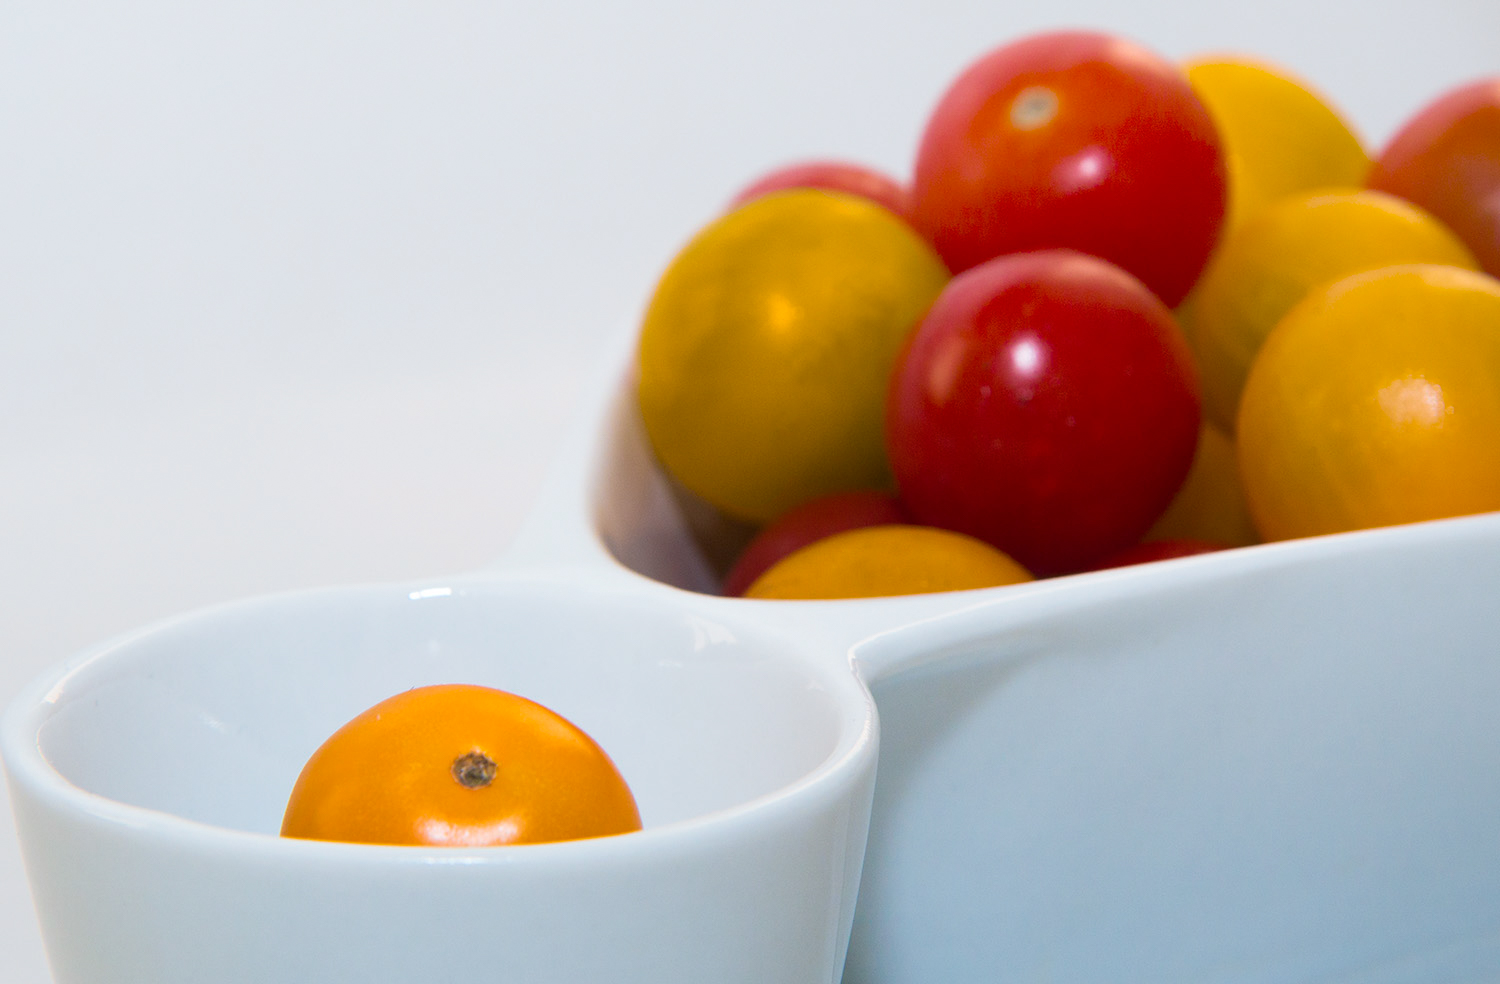 vegetable photography tomatoes in a little bowl